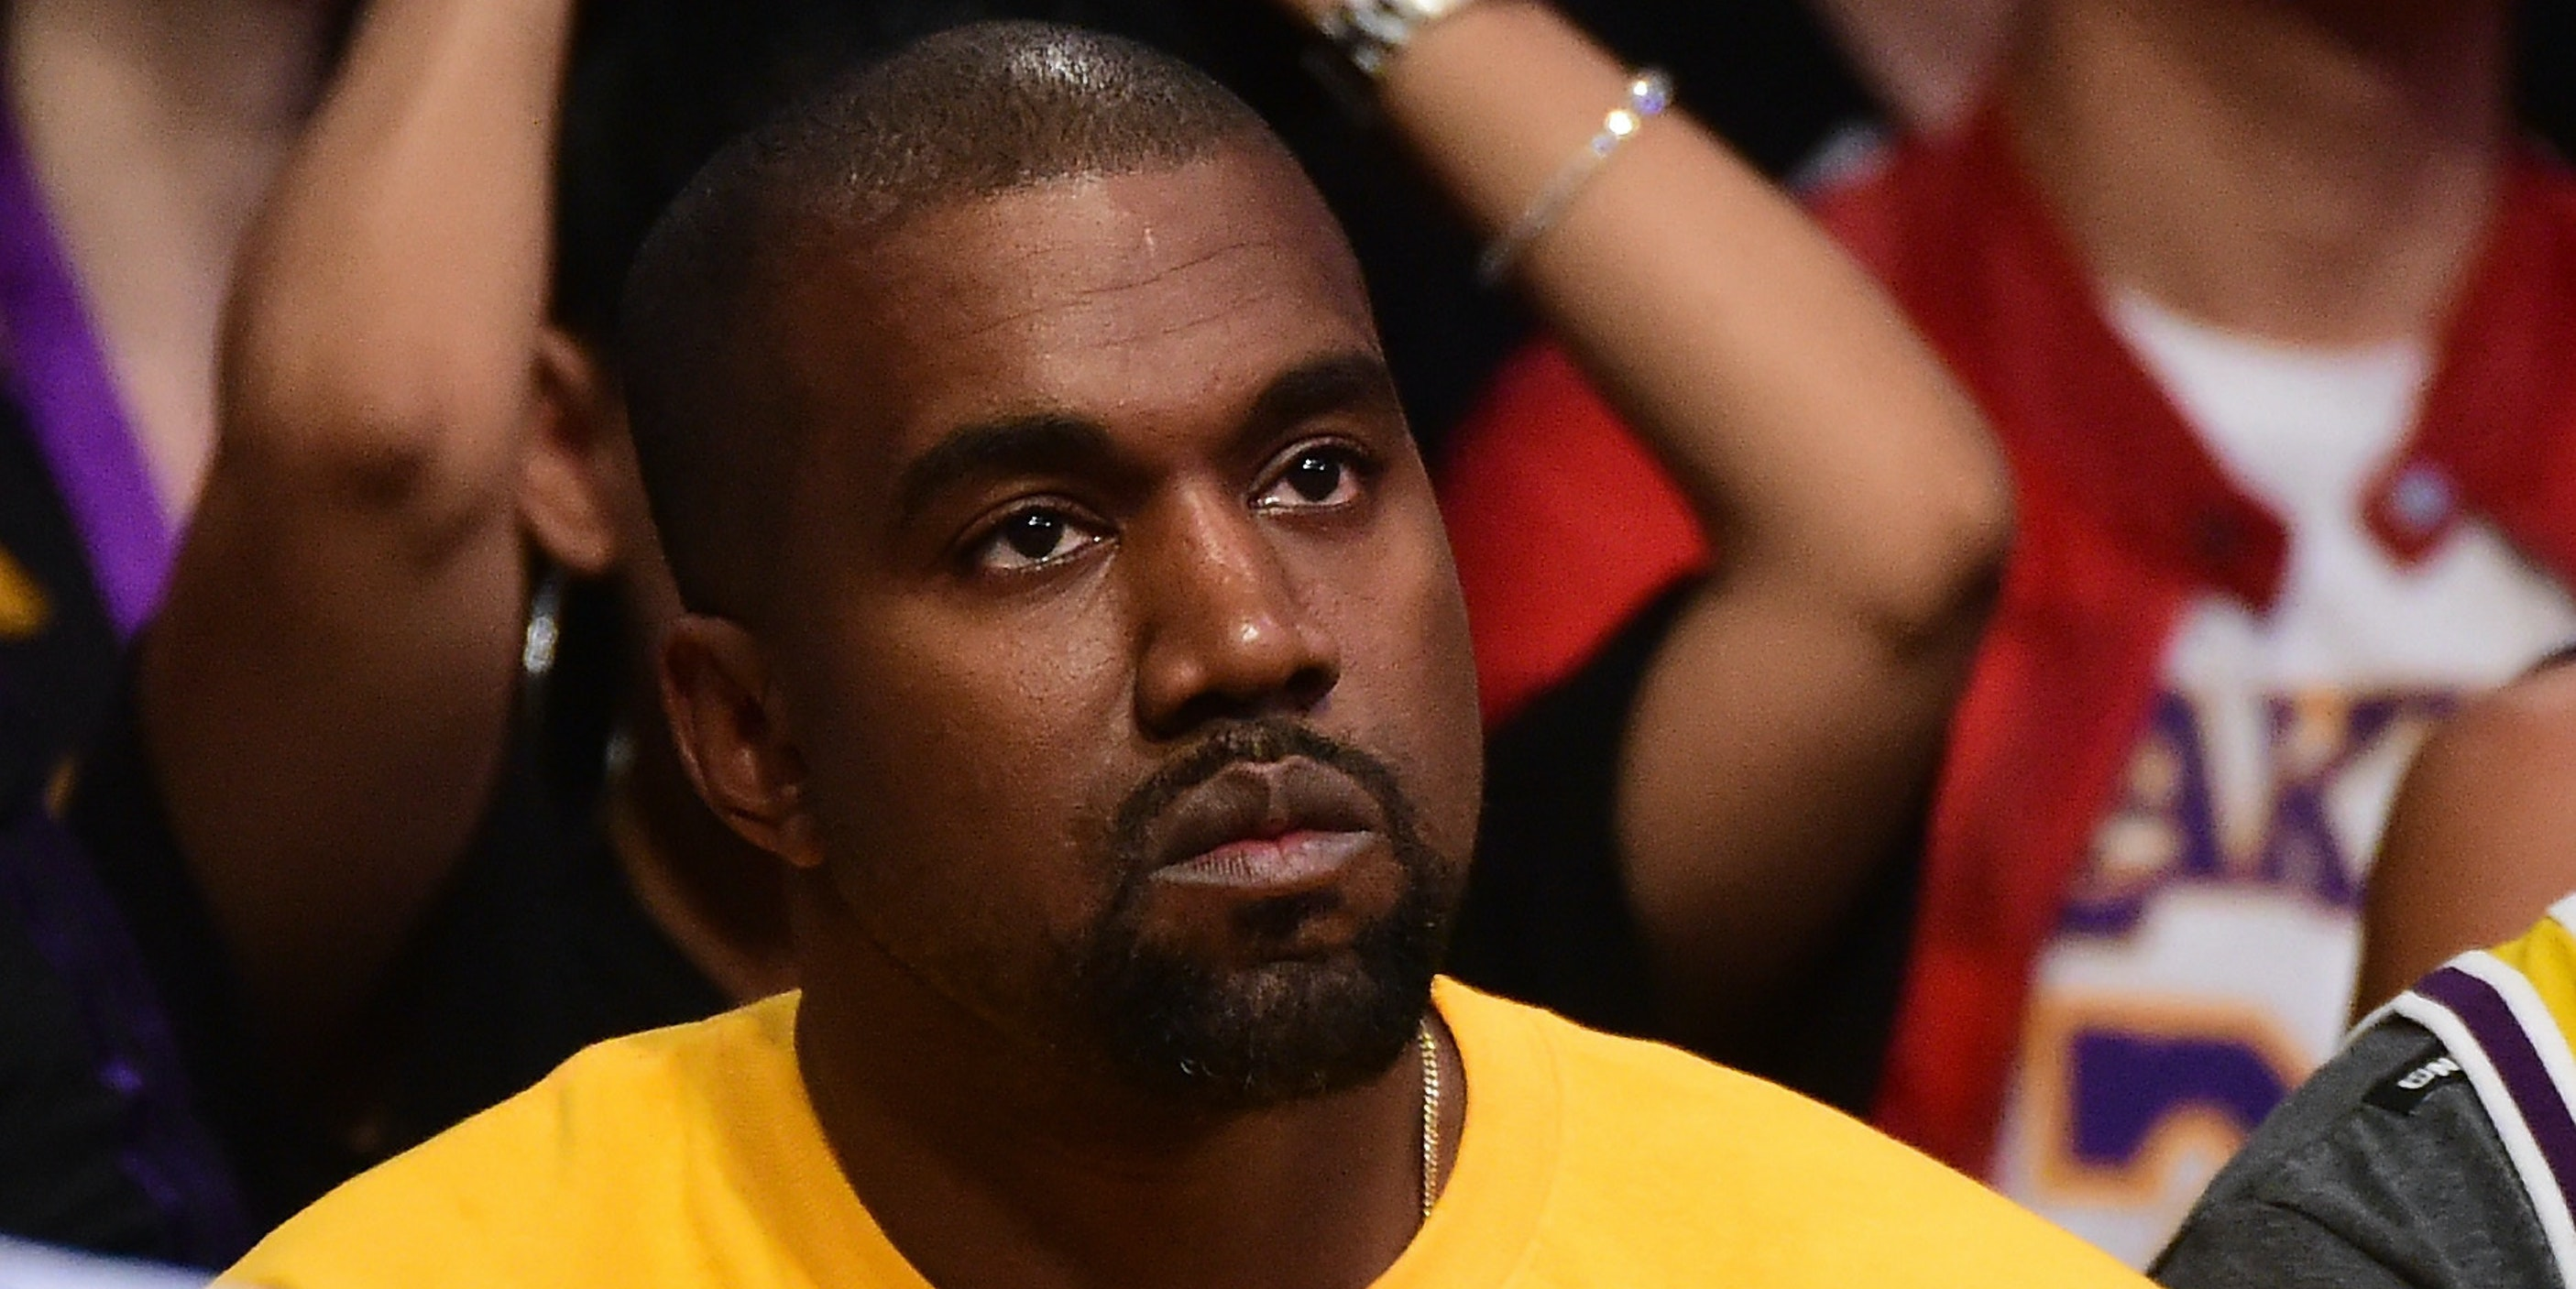 Kanye West has resting bitch face.